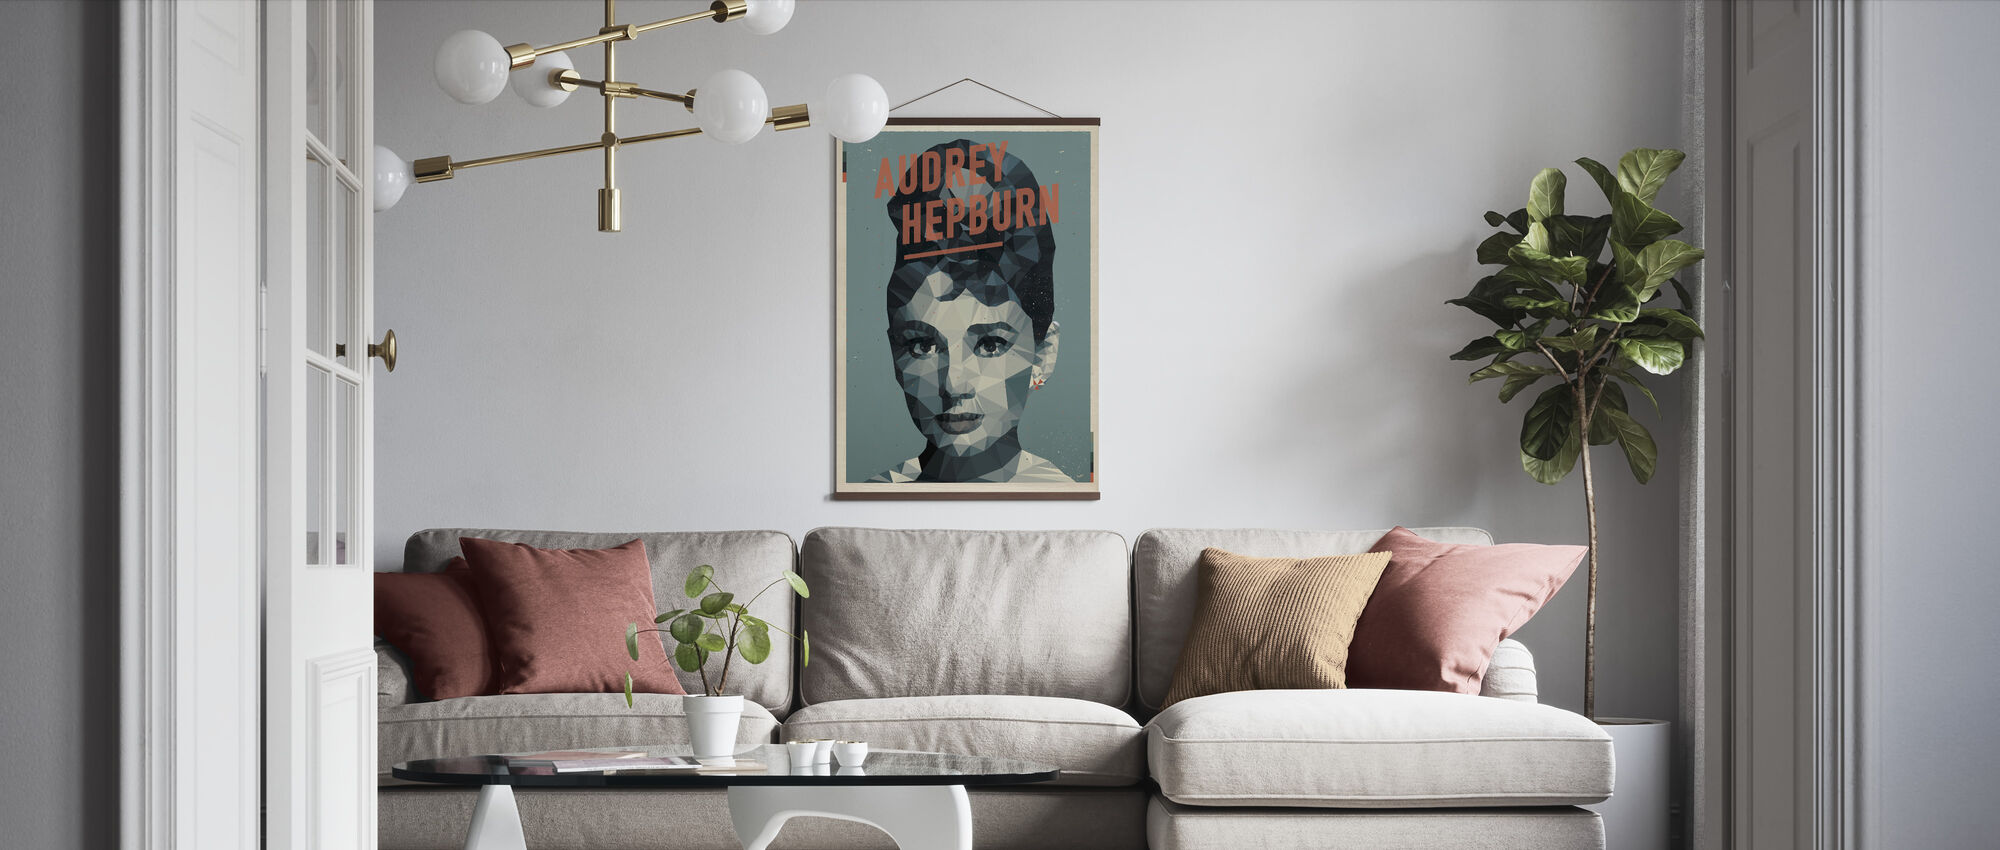 I Never Think of Myself as an Icon - Poster - Living Room